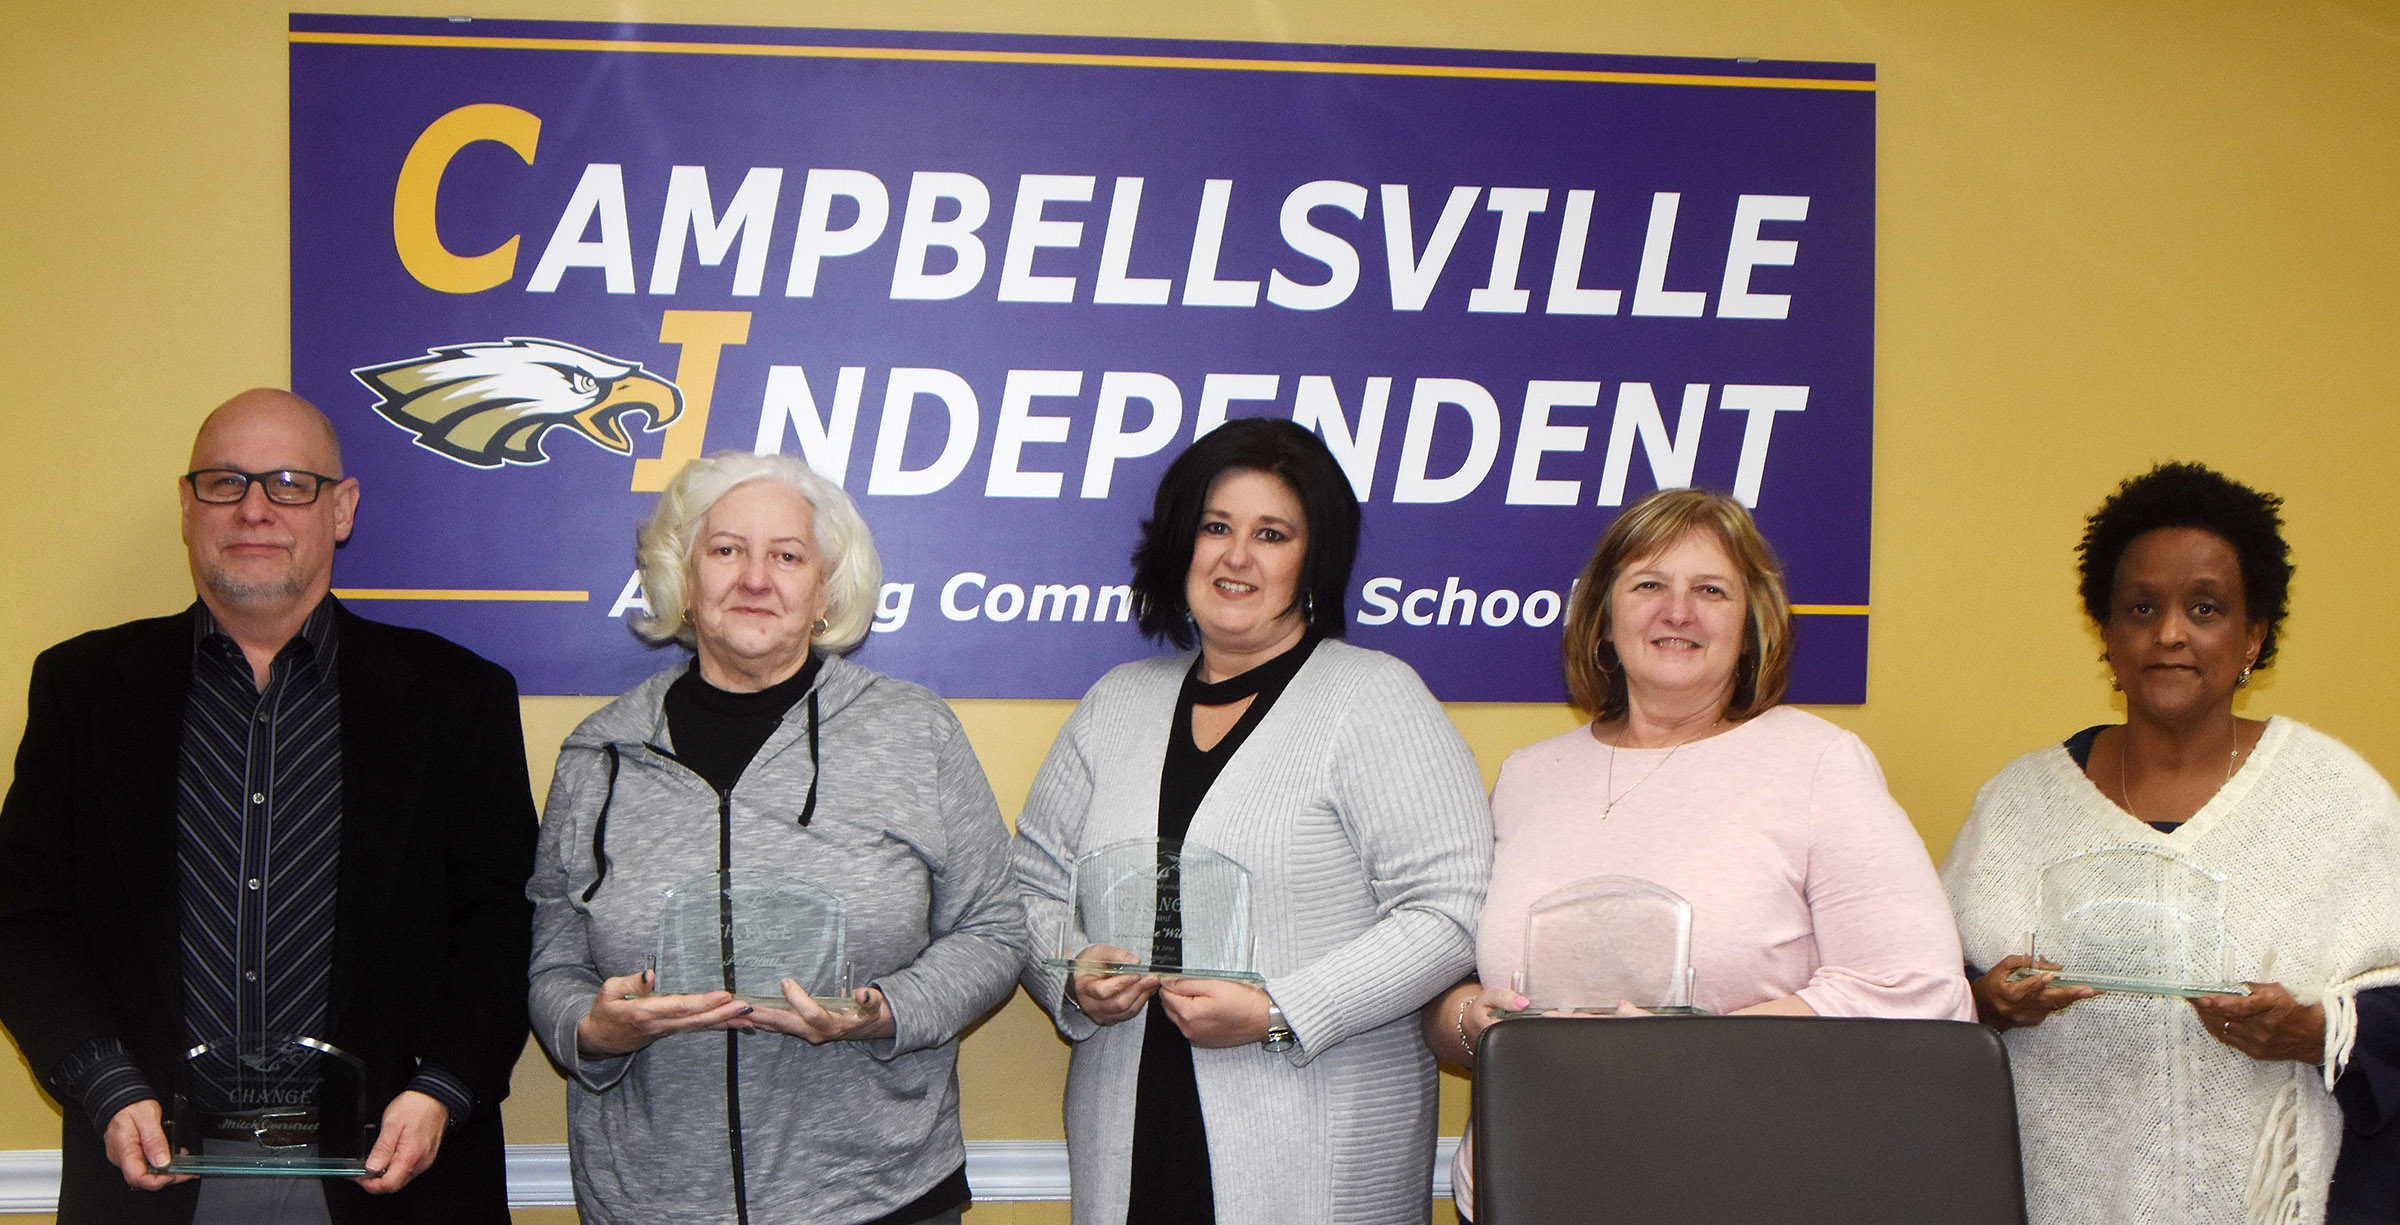 Campbellsville Independent Schools Superintendent Kirby Smith honored Board of Education members with the community Change Award. From left are Board member Mitch Overstreet, Board Chair Pat Hall, Board Vice Chair Suzanne Wilson and Board members Angie Johnson and Barkley Taylor.